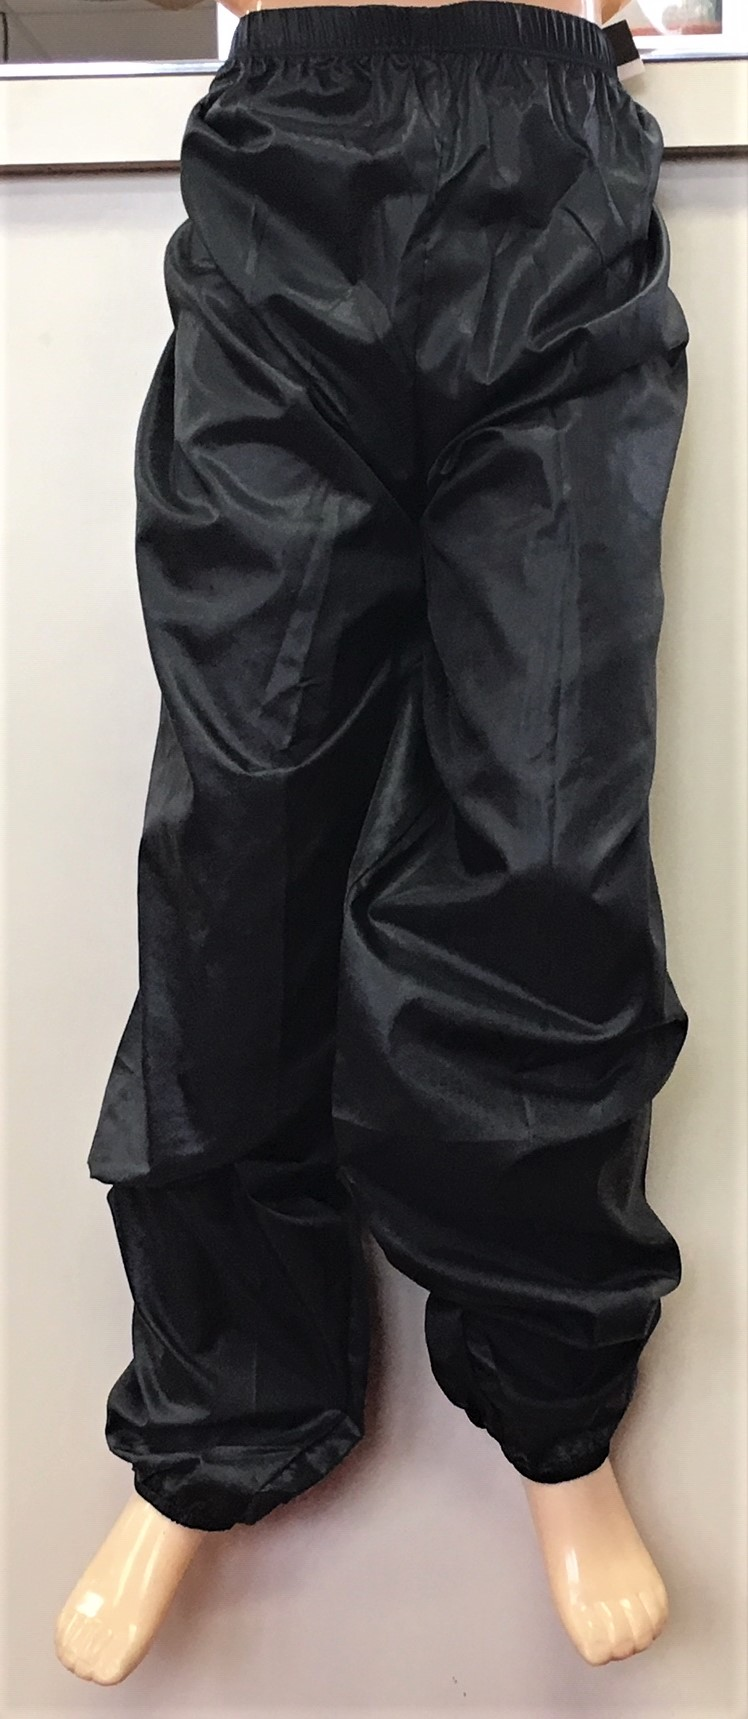 Bodywrappers Adult Ripstop Pants